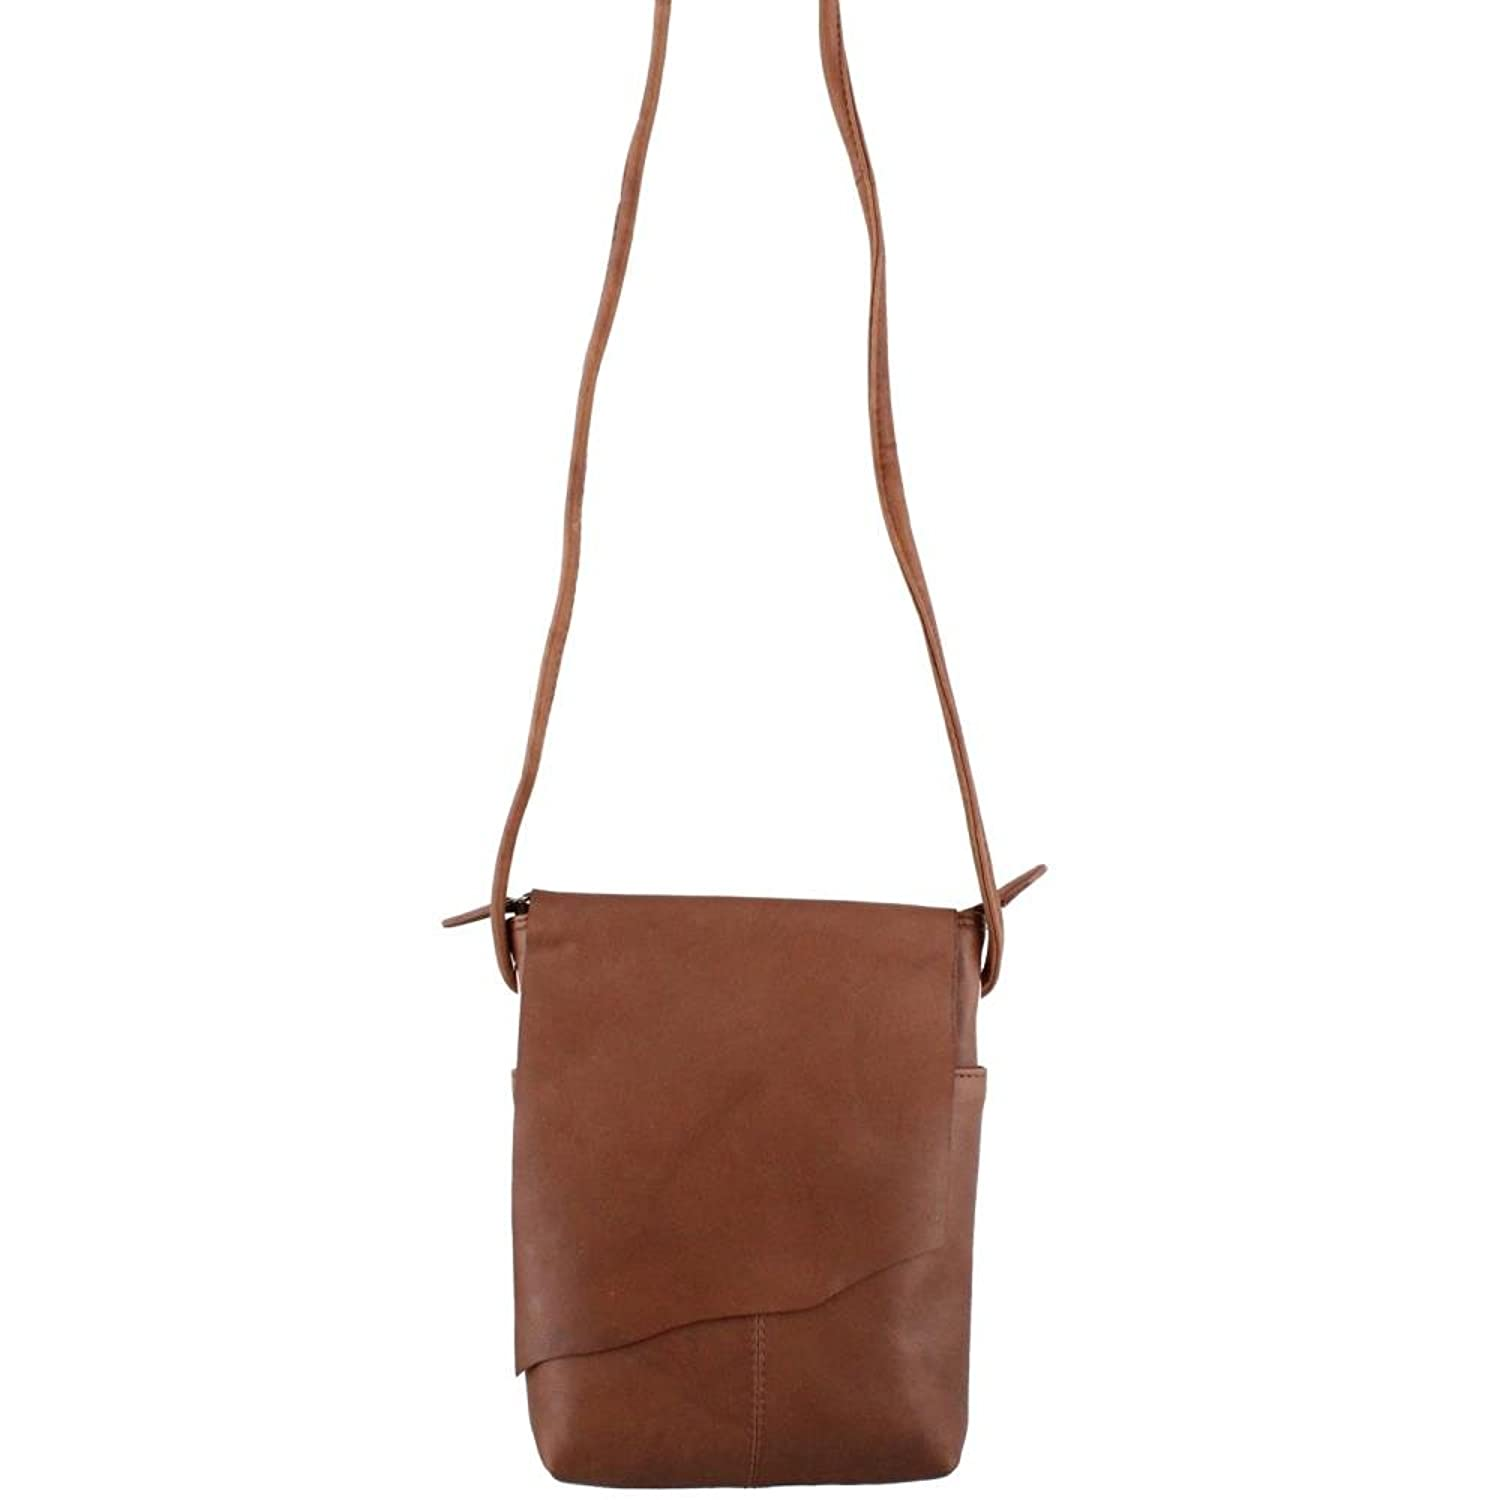 ILI 6647 Mini Sac Cross-body Leather Handbag